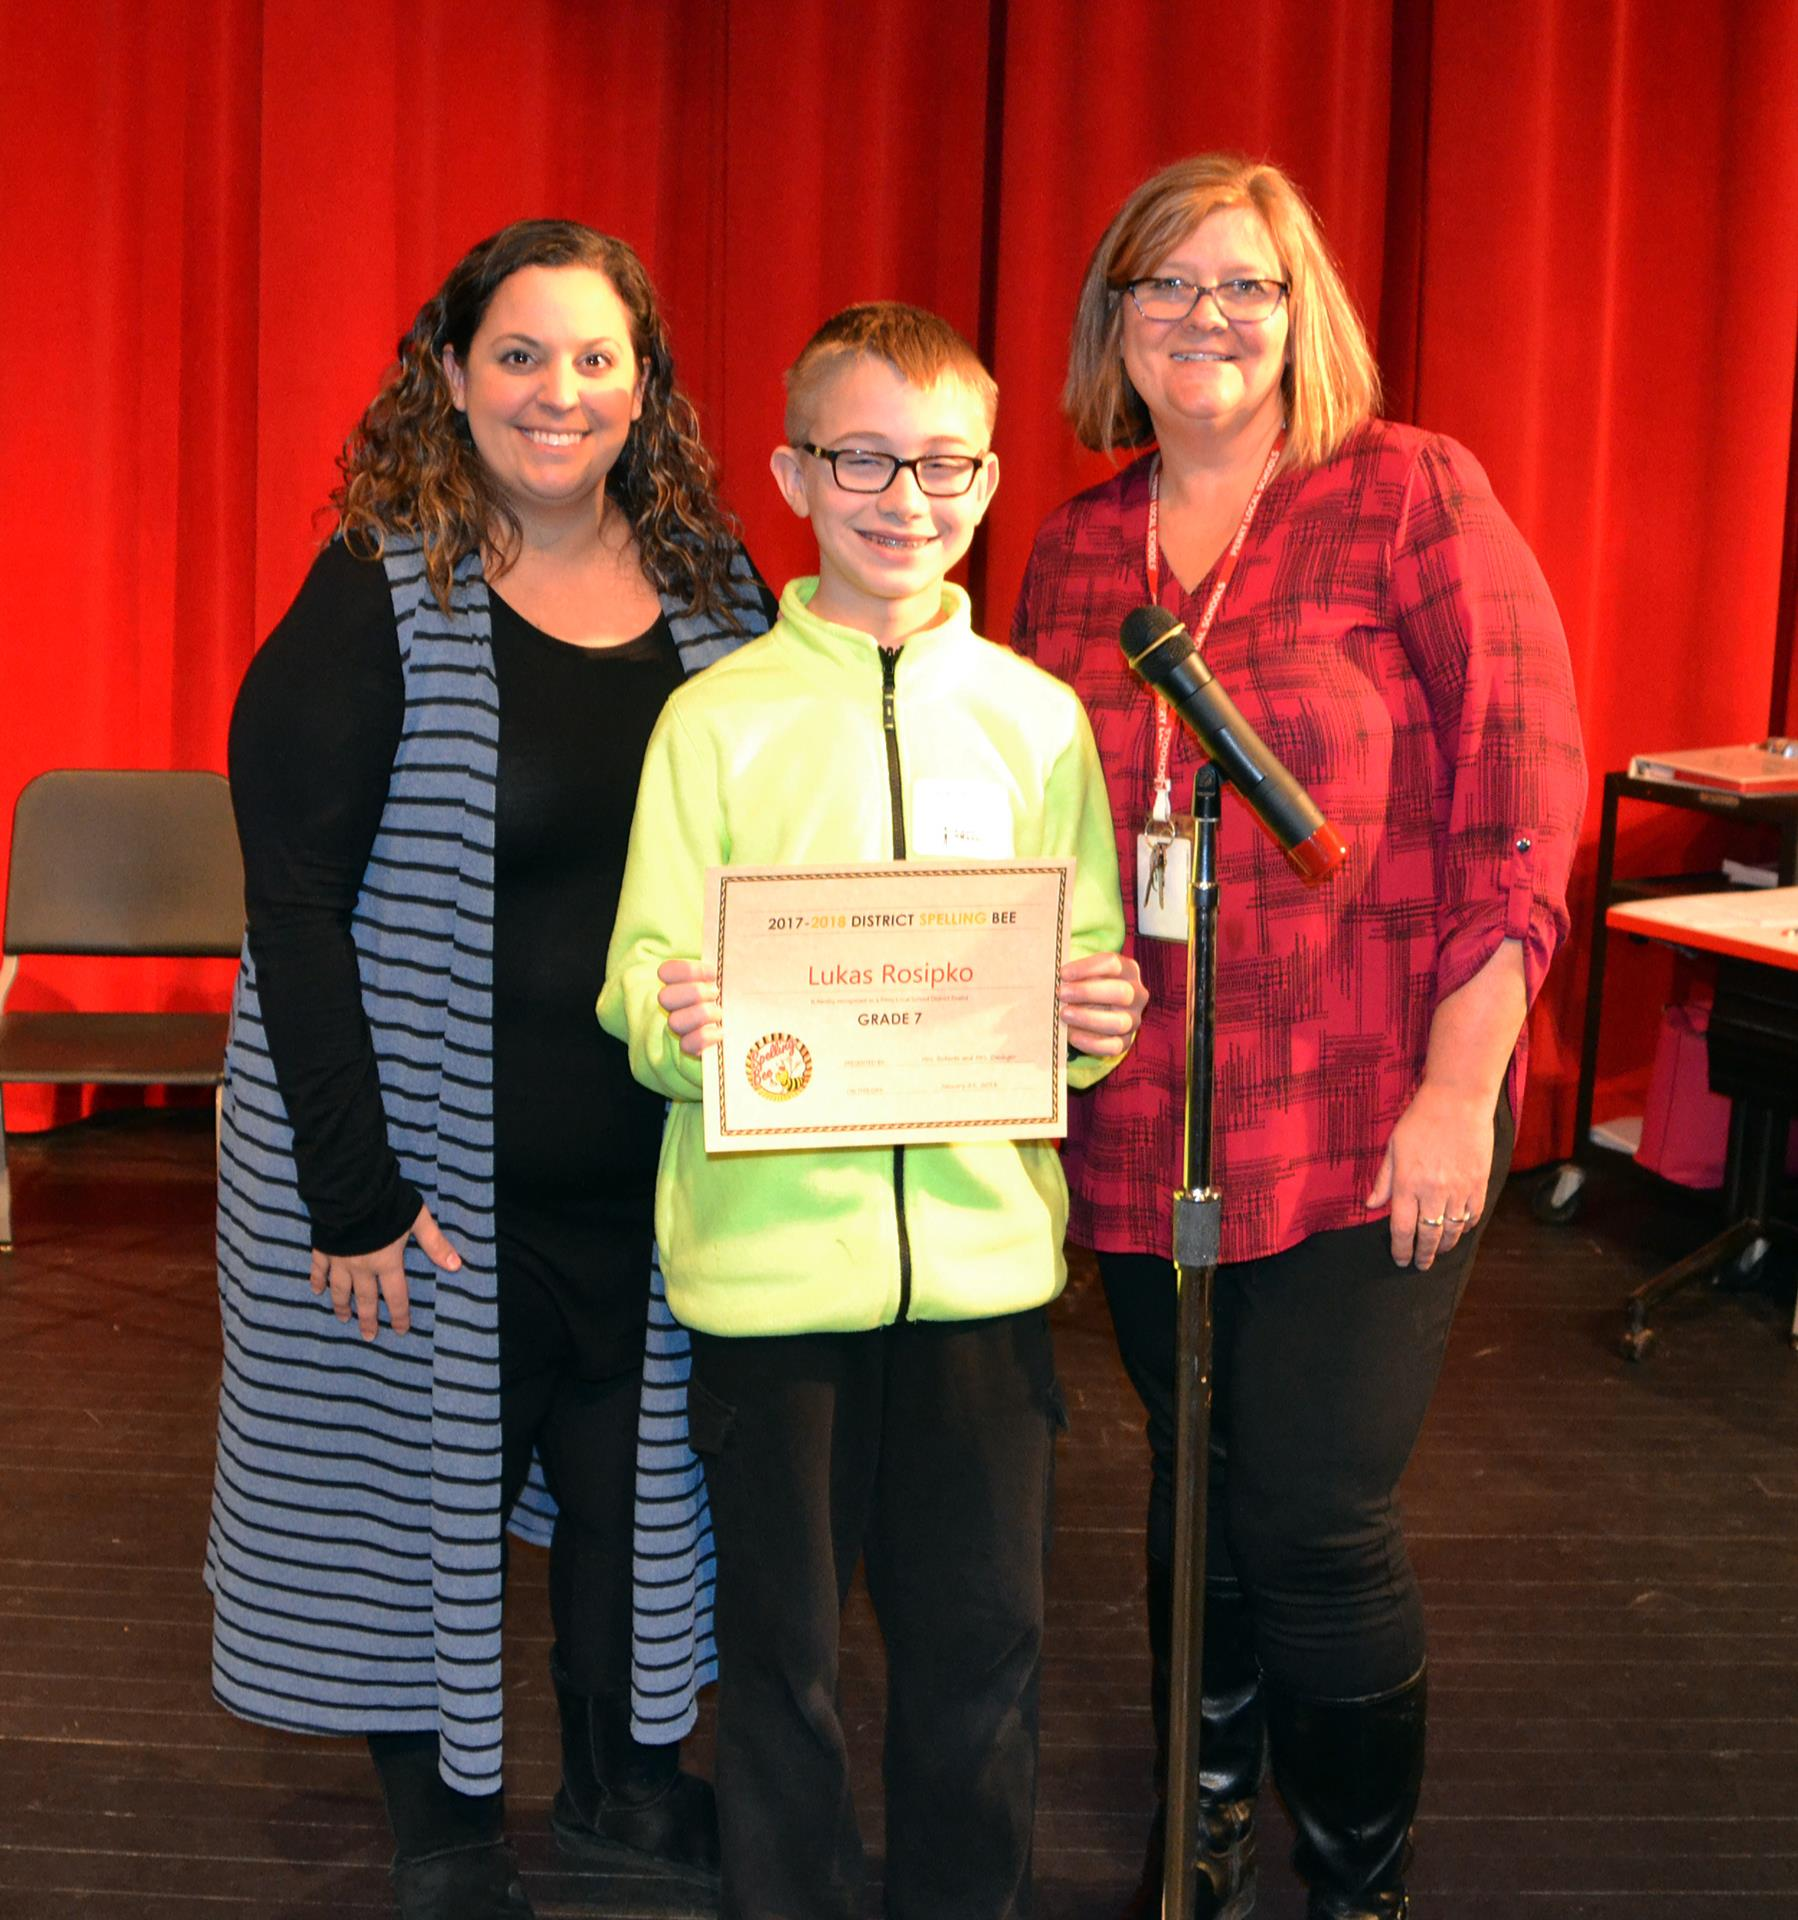 Lukas Rosipko along with Spelling Bee advisors Mrs. Amy Dasinger (left) and Mrs. Tami Roberts.